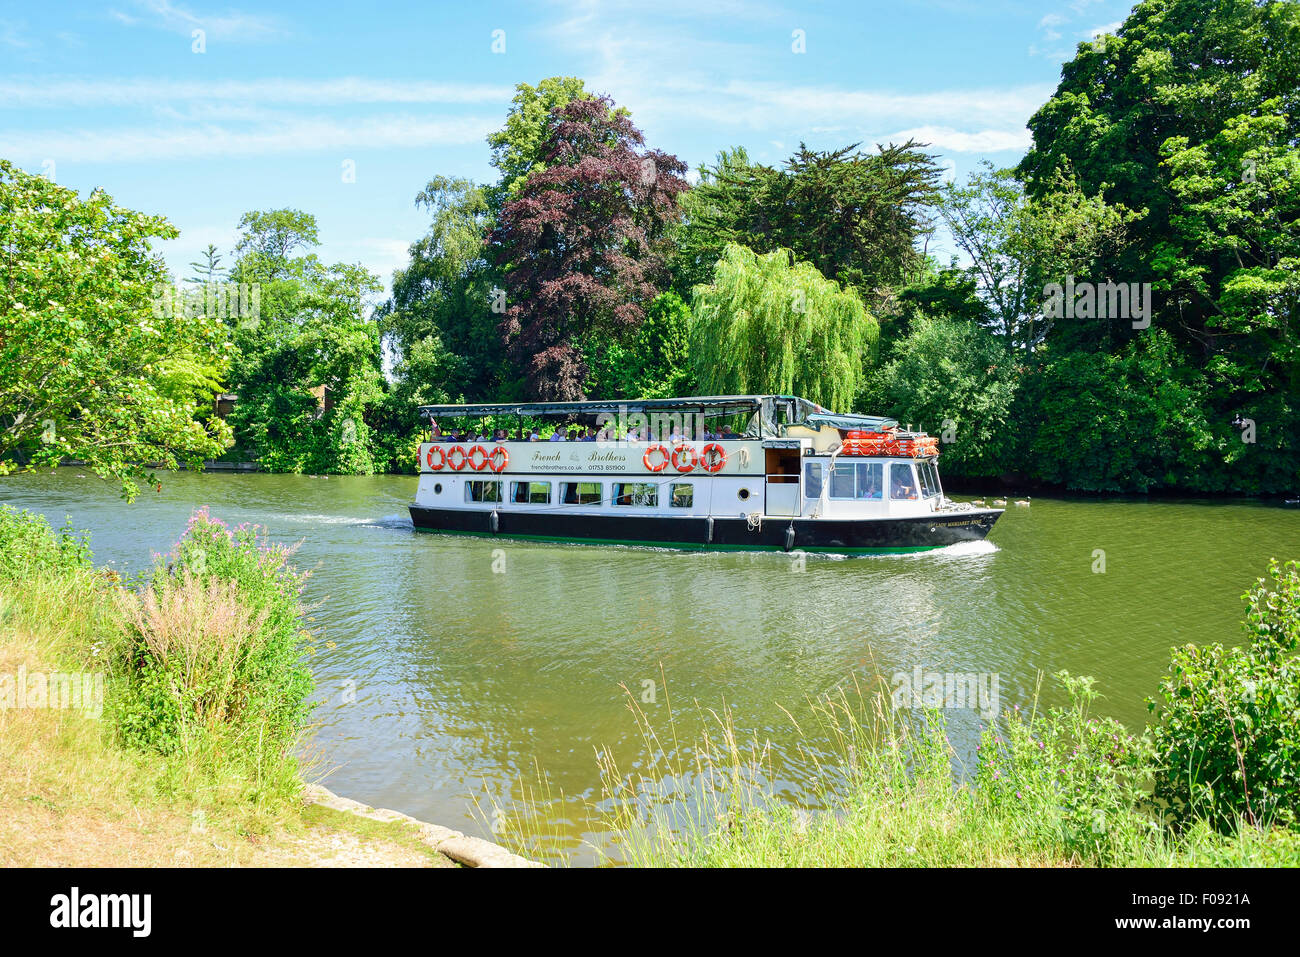 French Brothers 'Lady Margaret Anne' cruise boat on River Thames, Runnymede, Surrey, England, United Kingdom - Stock Image